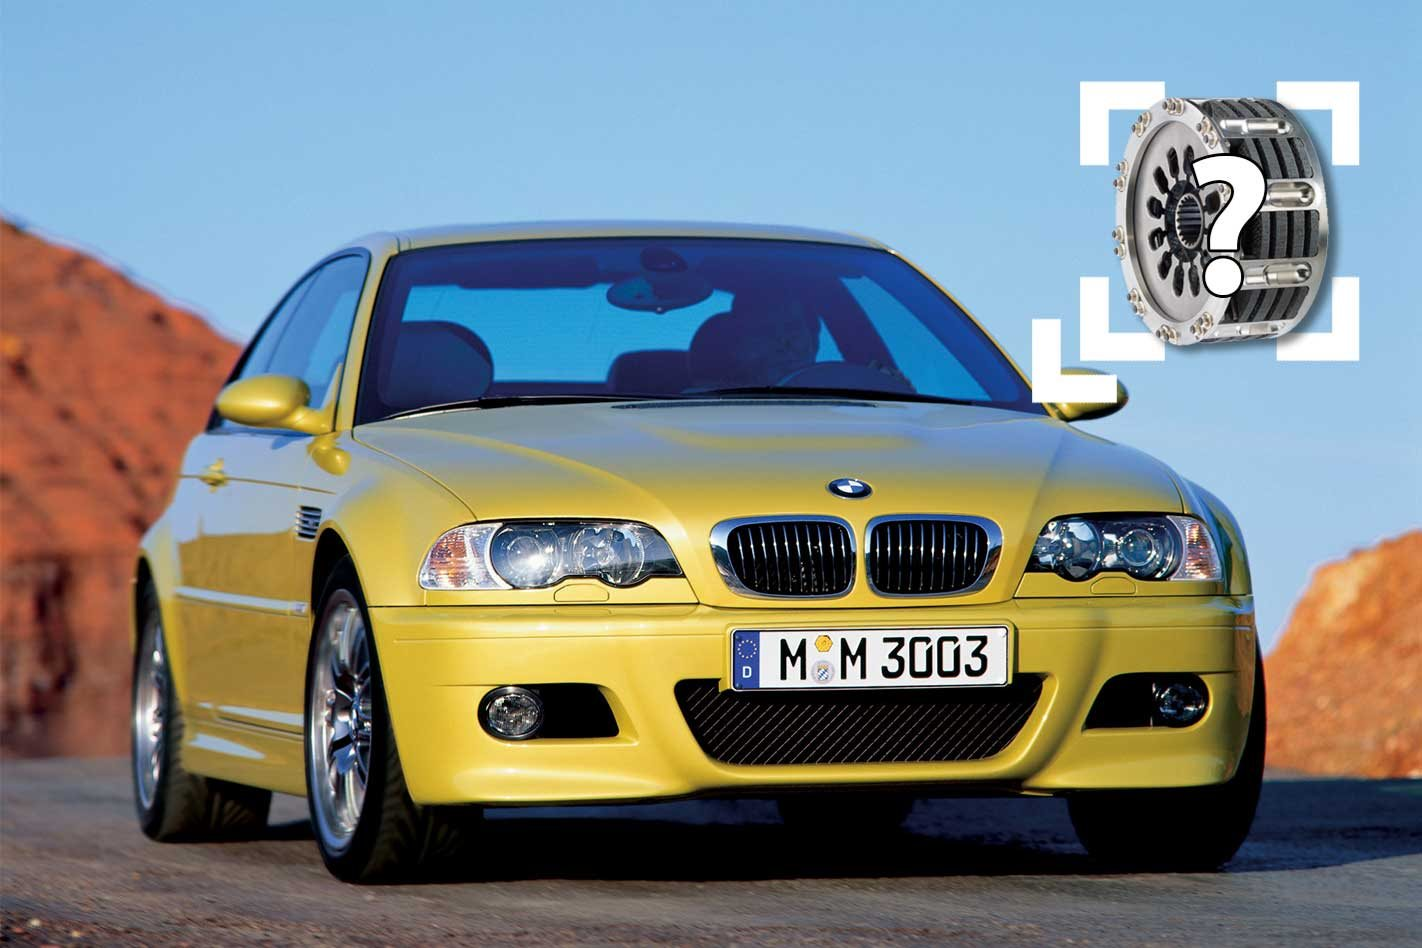 BMW M3 owner receives F1 race clutch by accident